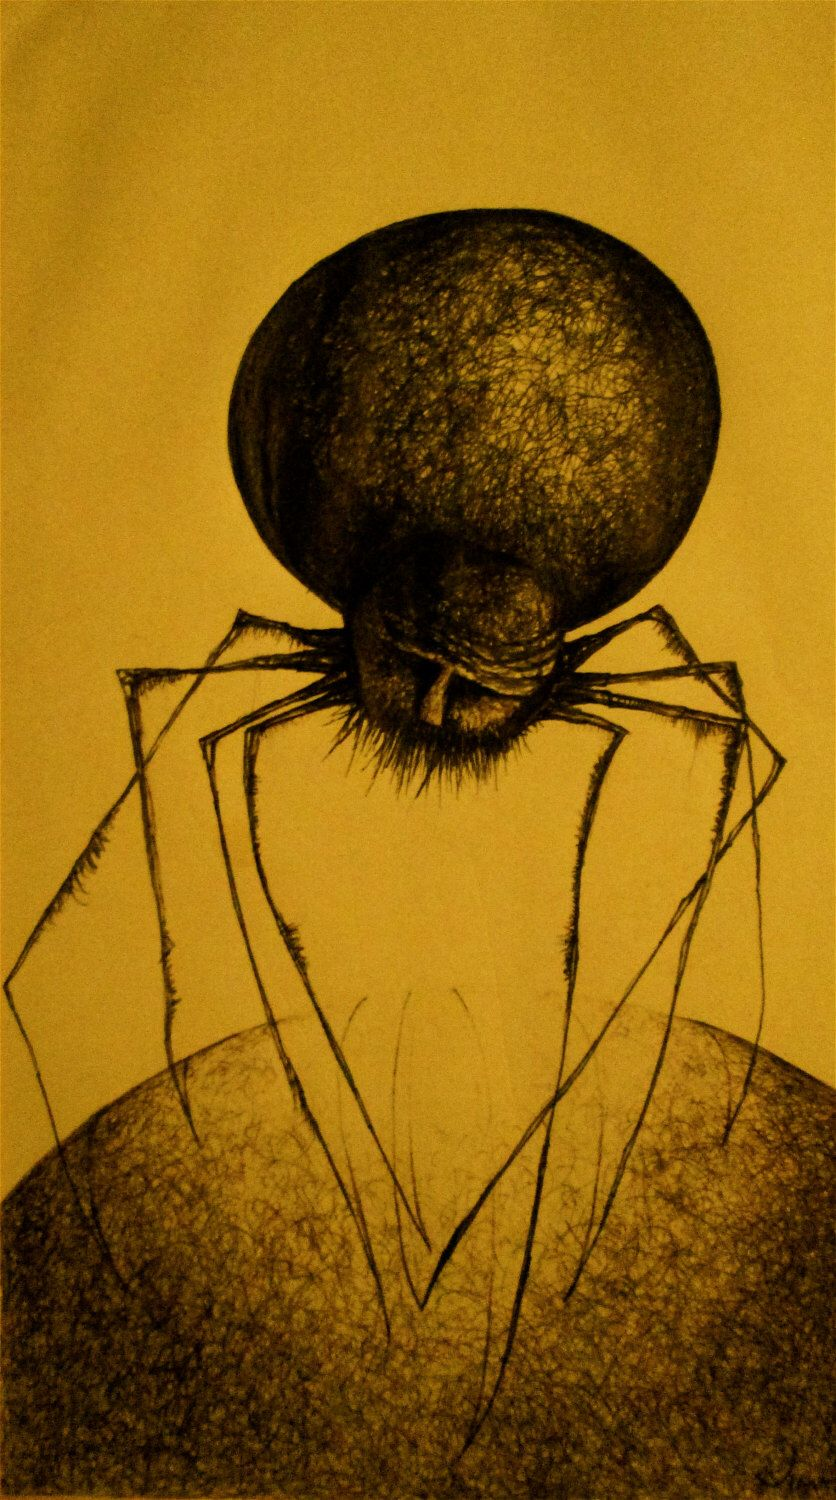 Spider Art, Prints, Wall Art, Art Prints, Spider Drawing, Pen and ...